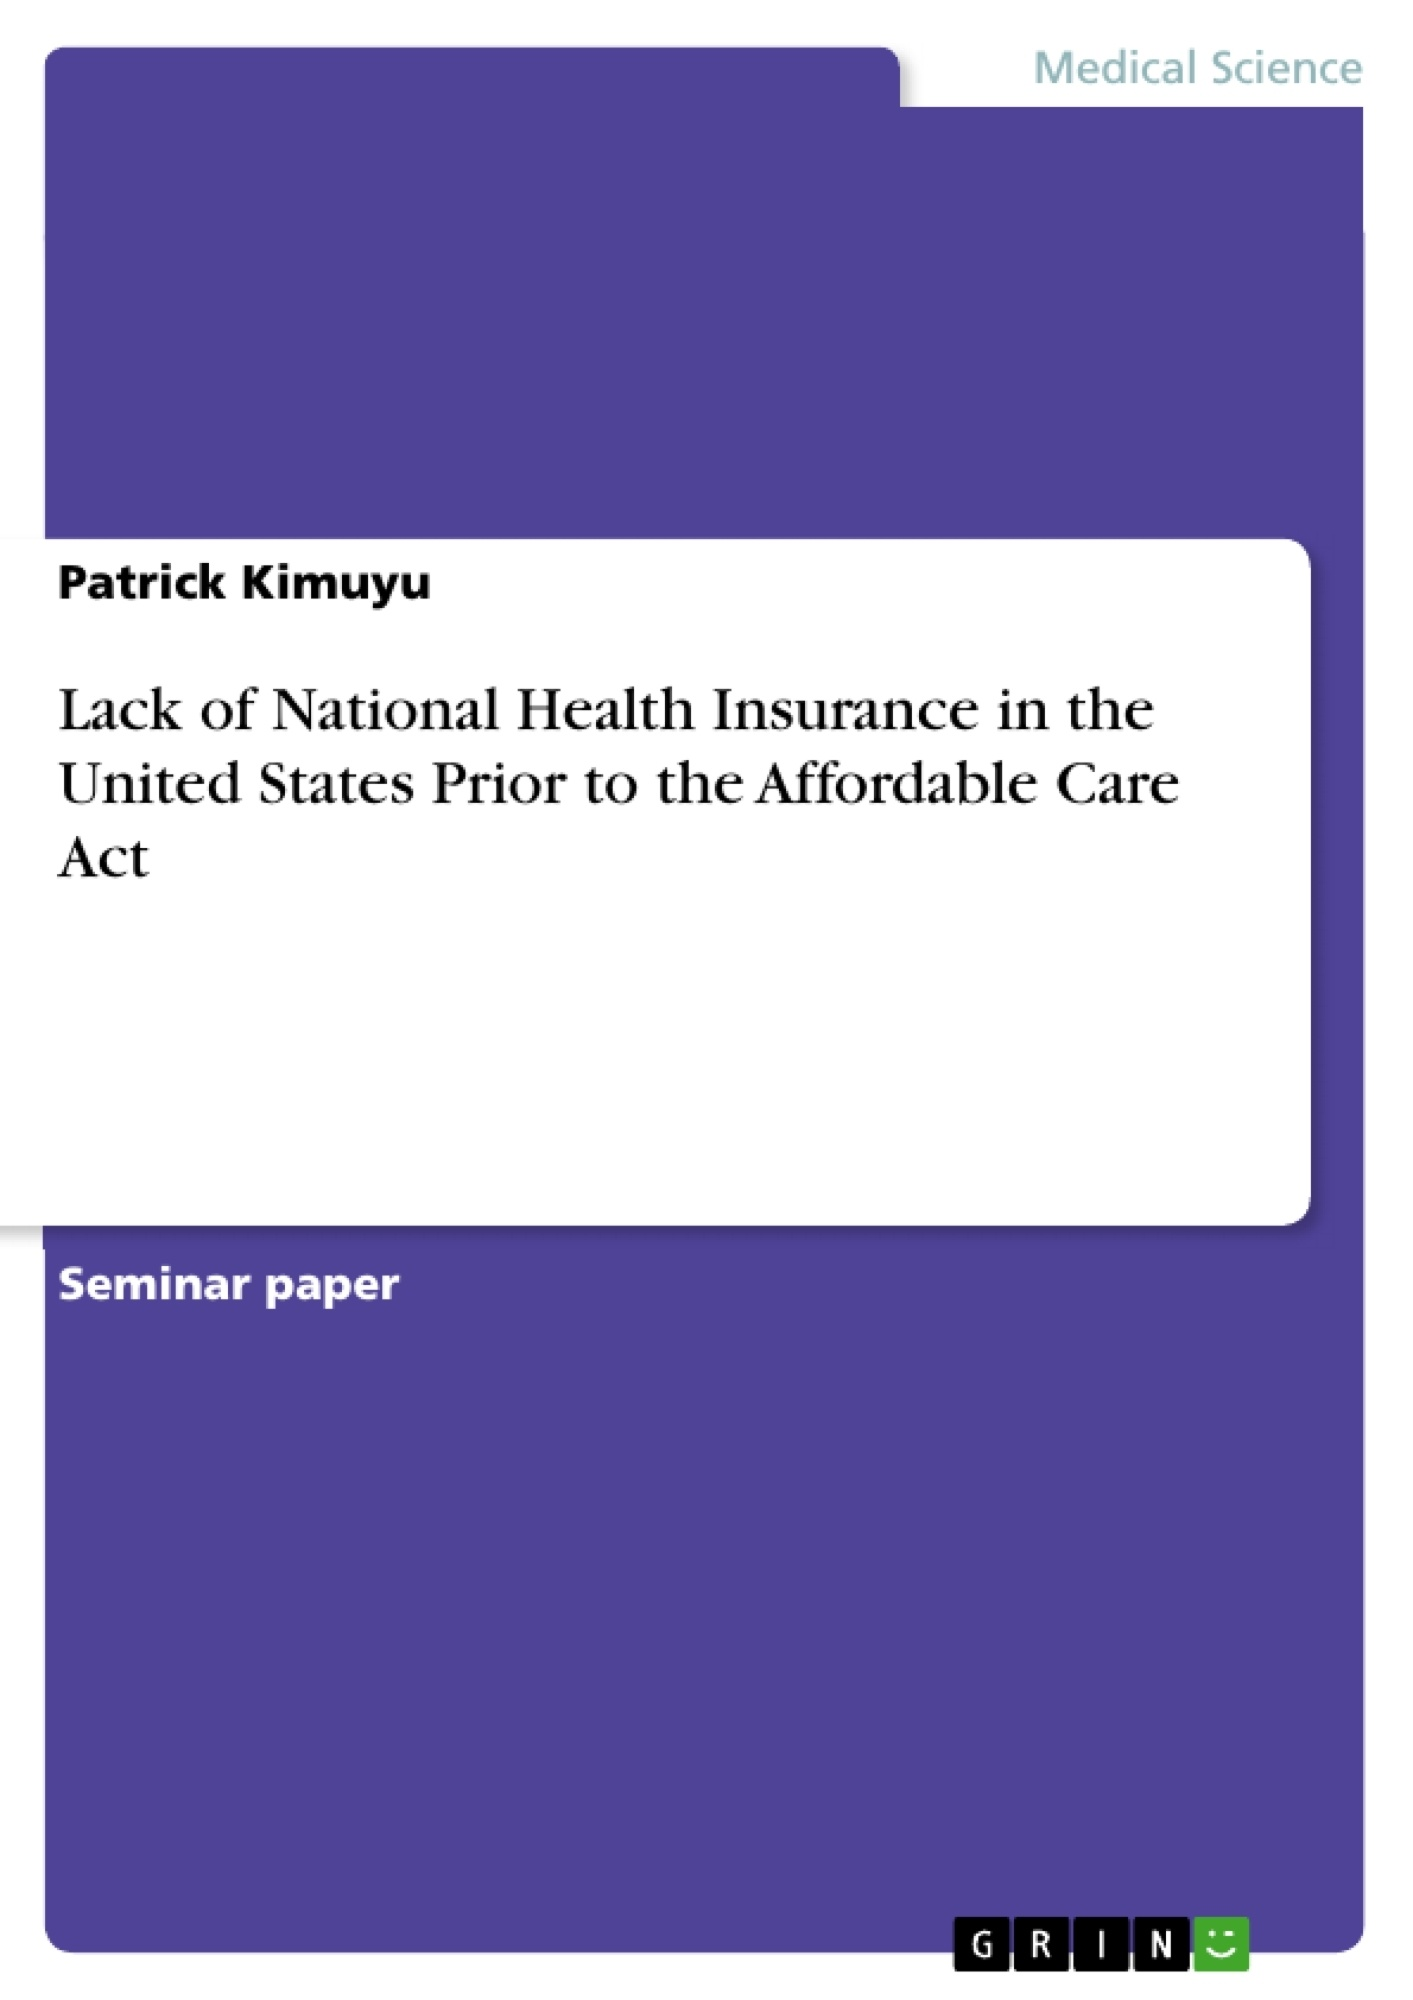 Title: Lack of National Health Insurance in the United States Prior to the Affordable Care Act